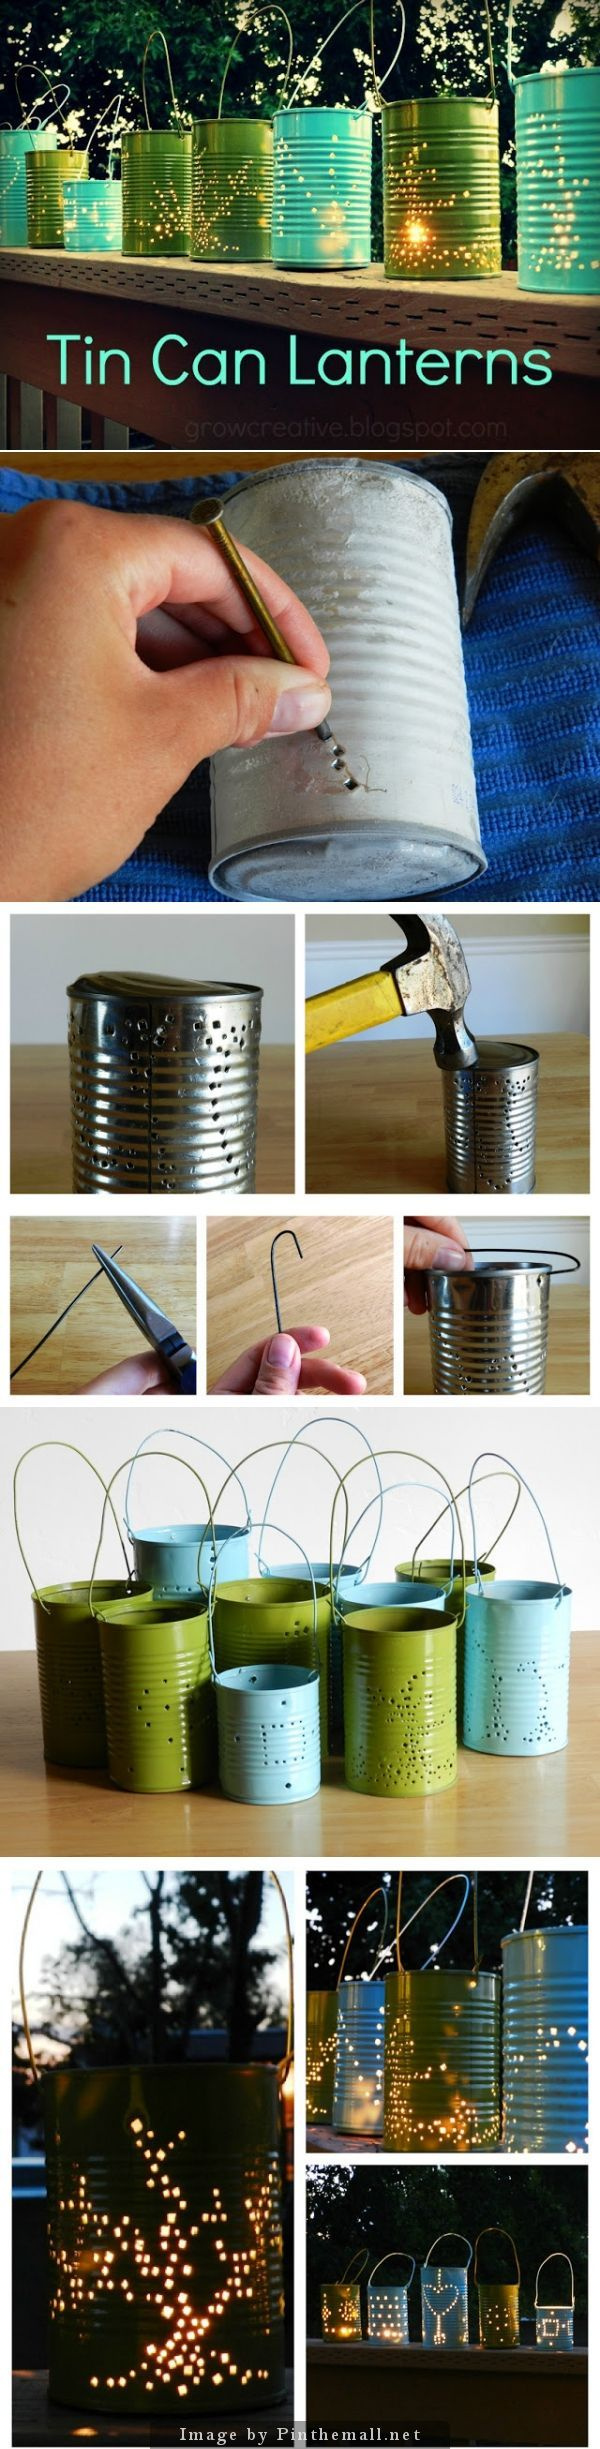 50 One-Day Garden And Backyard Projects Anyone Can Do #tincans